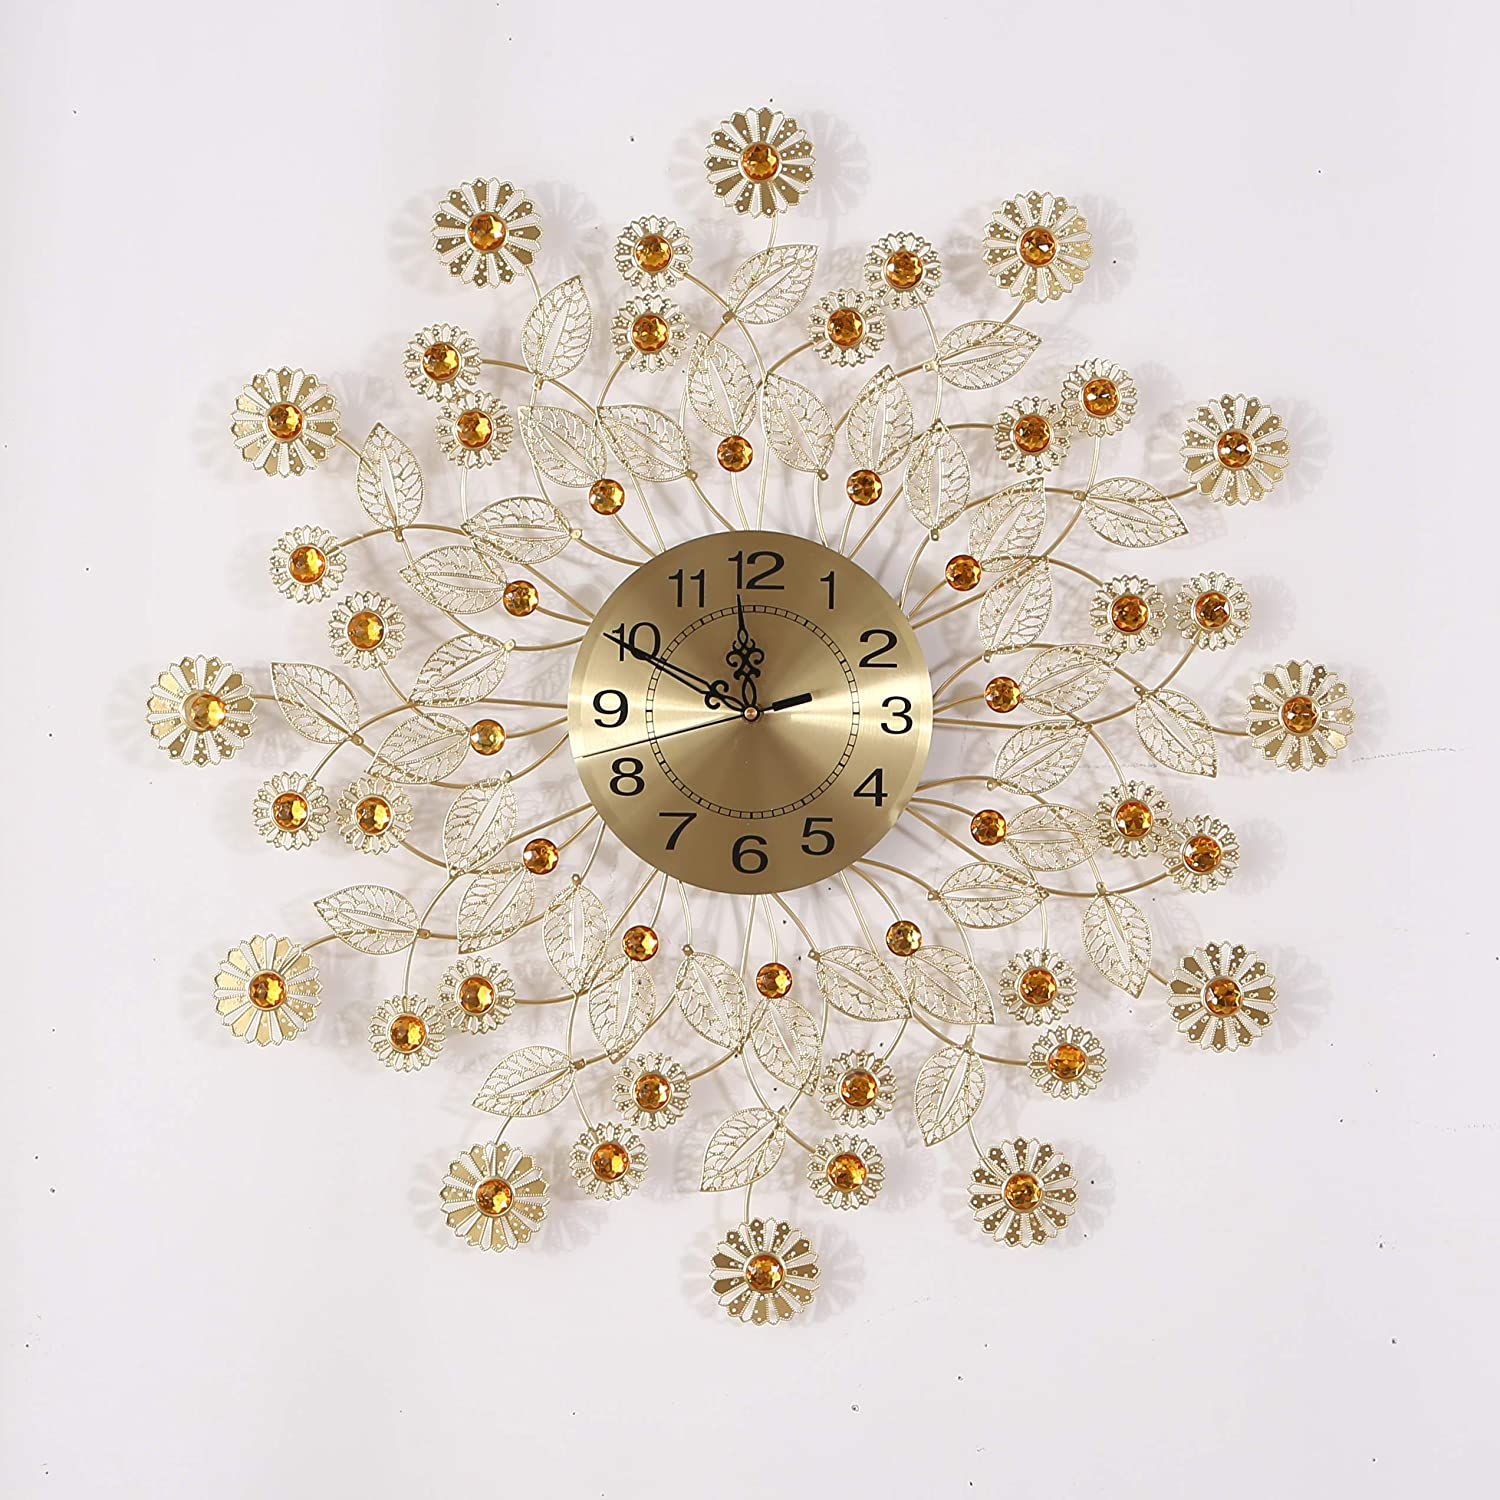 """KINBEDY 28"""" Luxury Crystal Bohemian Peacock Style Metal Rustic Wall Clock with Silent Movement 10"""" Metal Dial Large Sunburst Big Fancy Decorative Clock for Living Room, Bedroom, Office Space."""